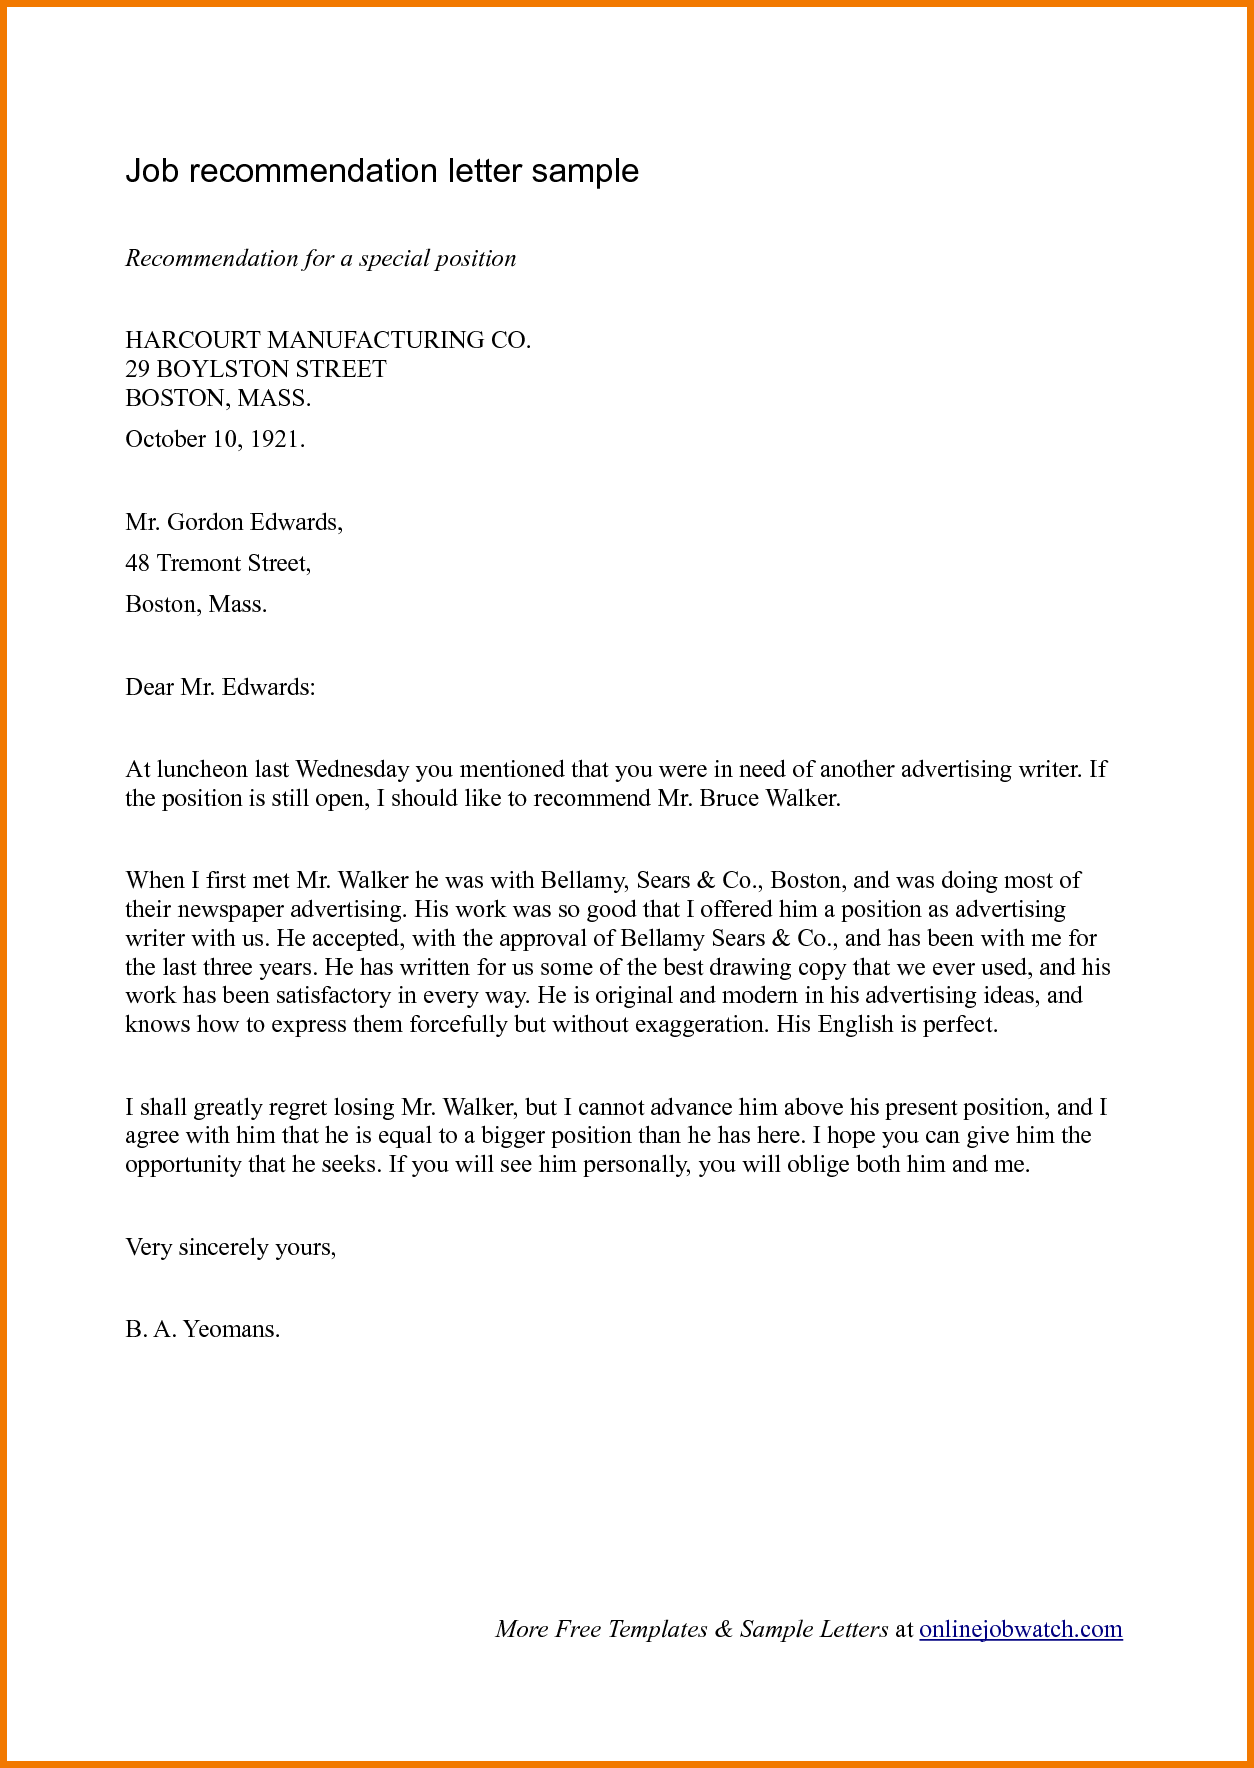 Recommendation Letter College Application  Order Custom Essay Online